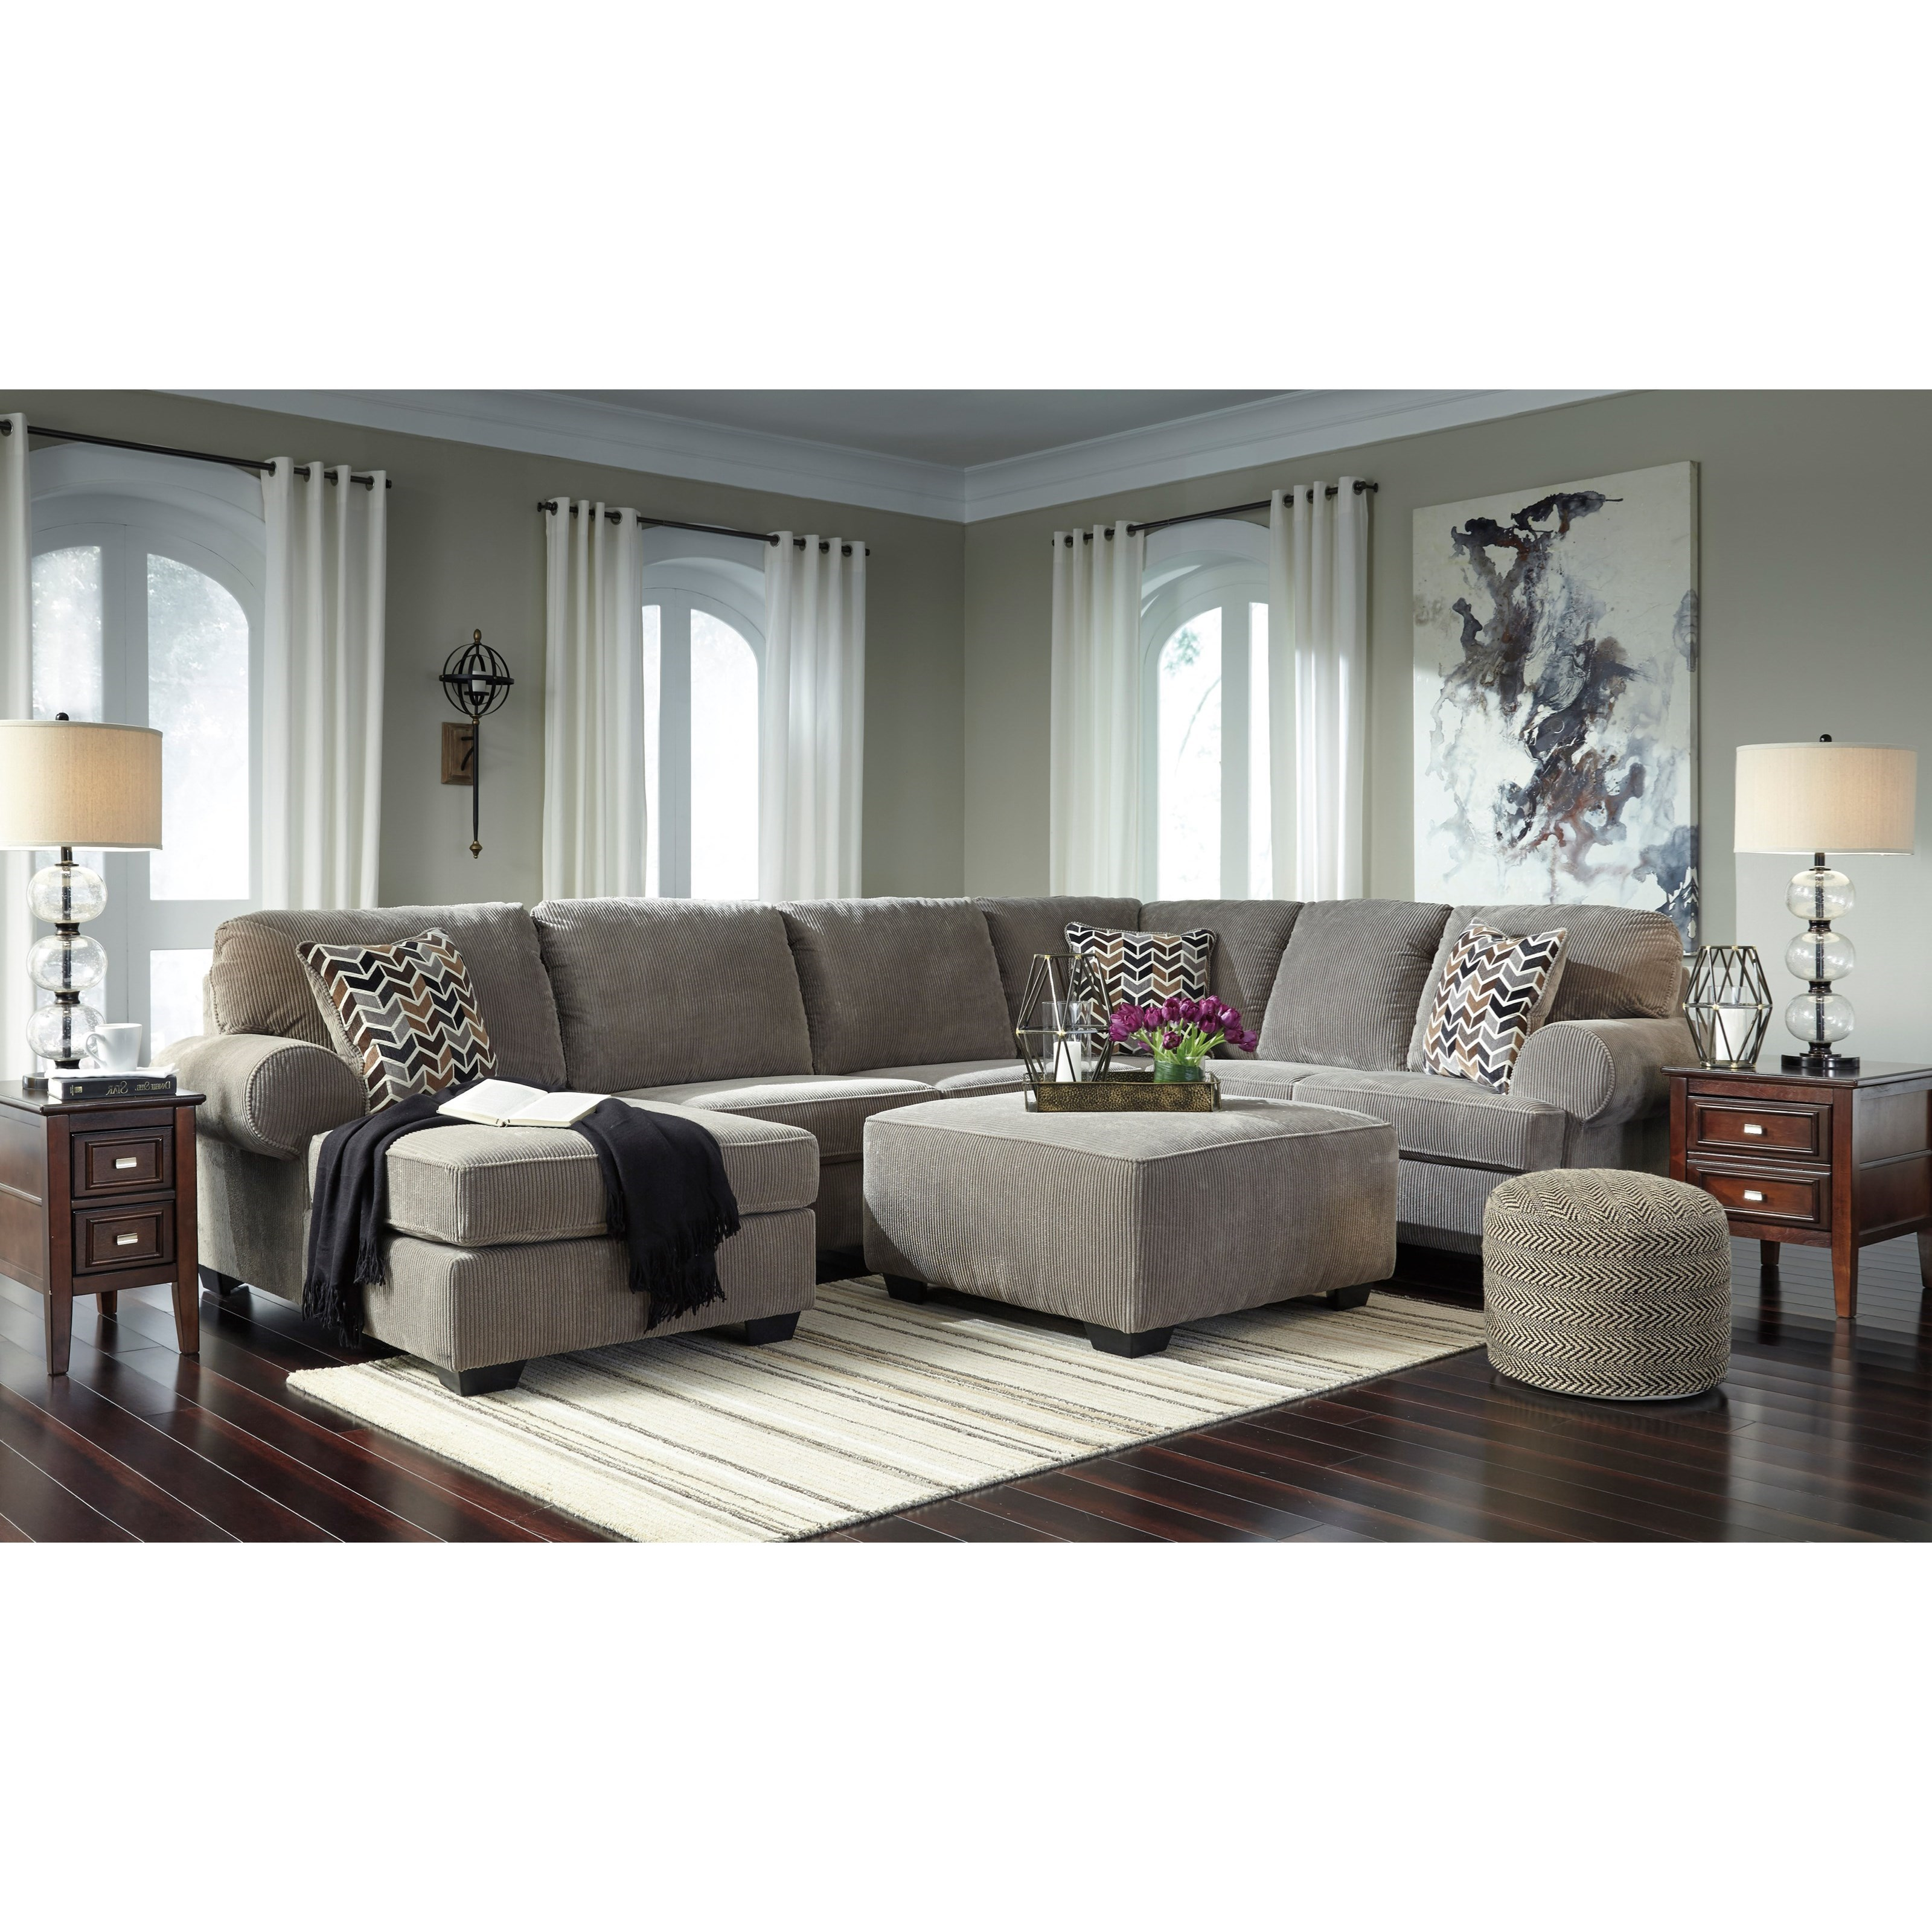 Jinllingsly Stationary Living Room Group by Signature Design by Ashley at A1 Furniture & Mattress